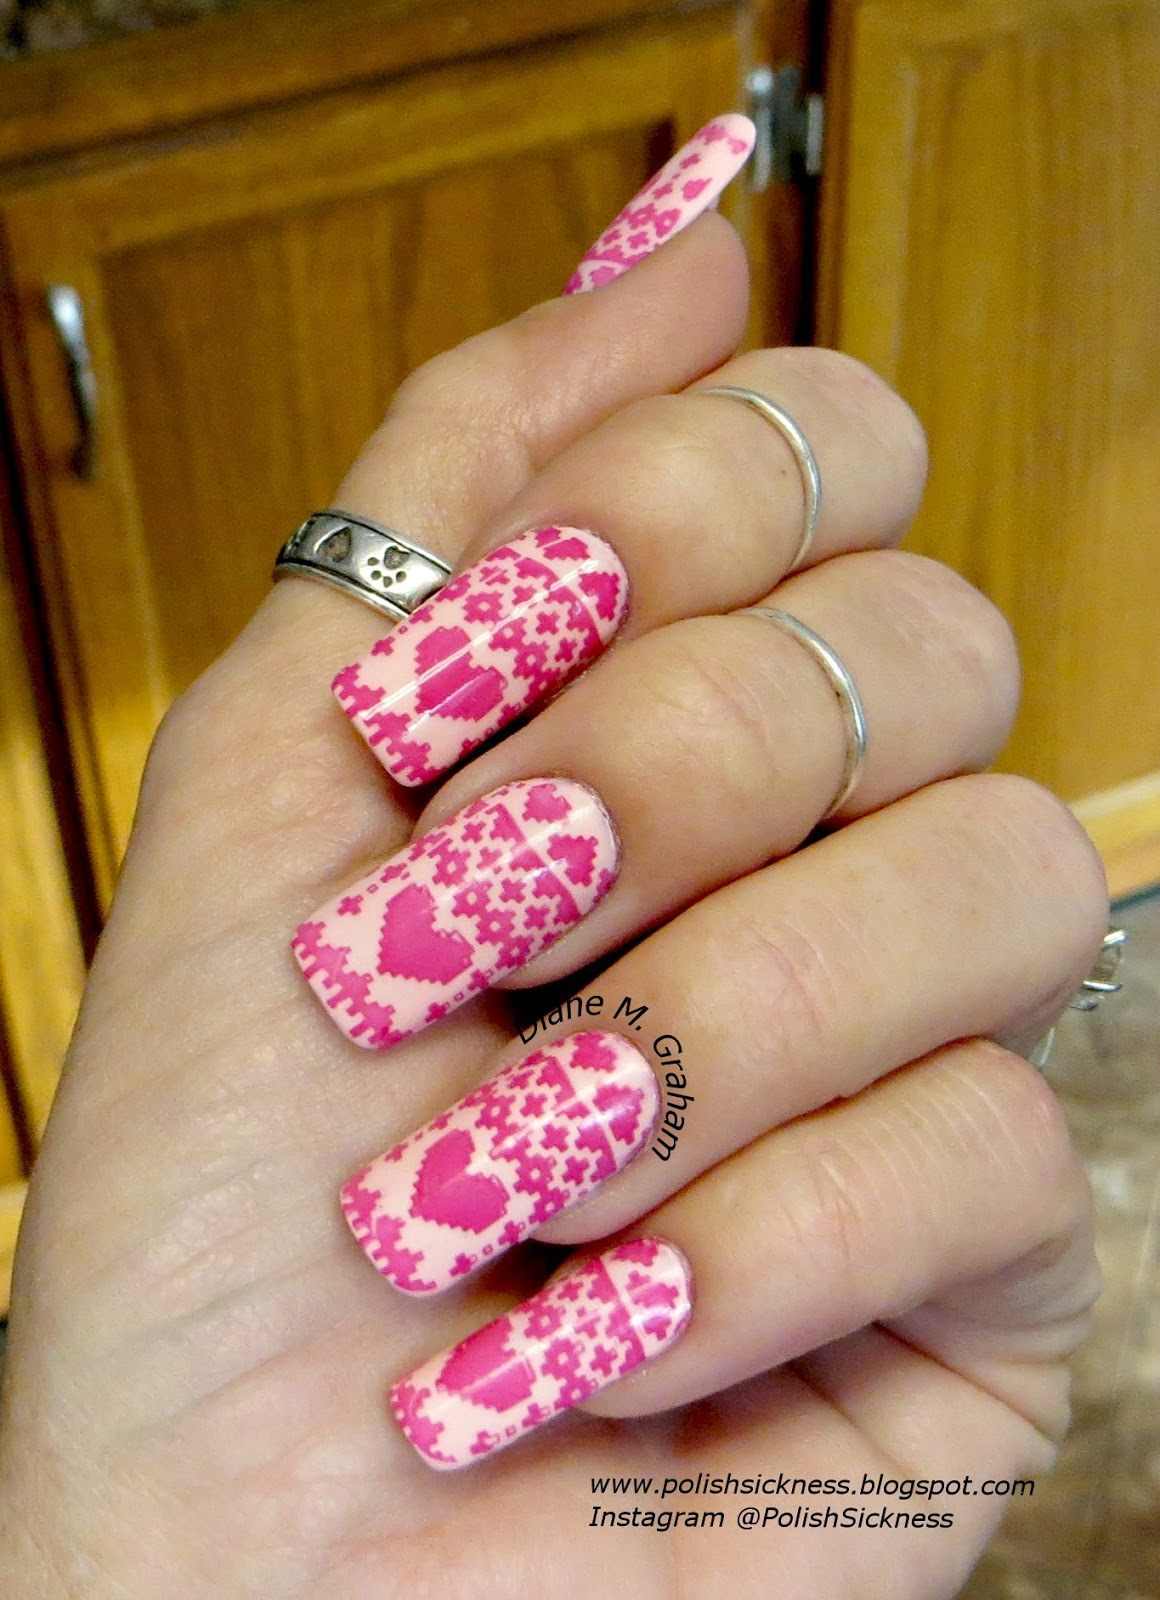 China Glaze Spring in My Step,  Essie Bachelorette Bash, MoYou Festive 04 stamp, Valentine